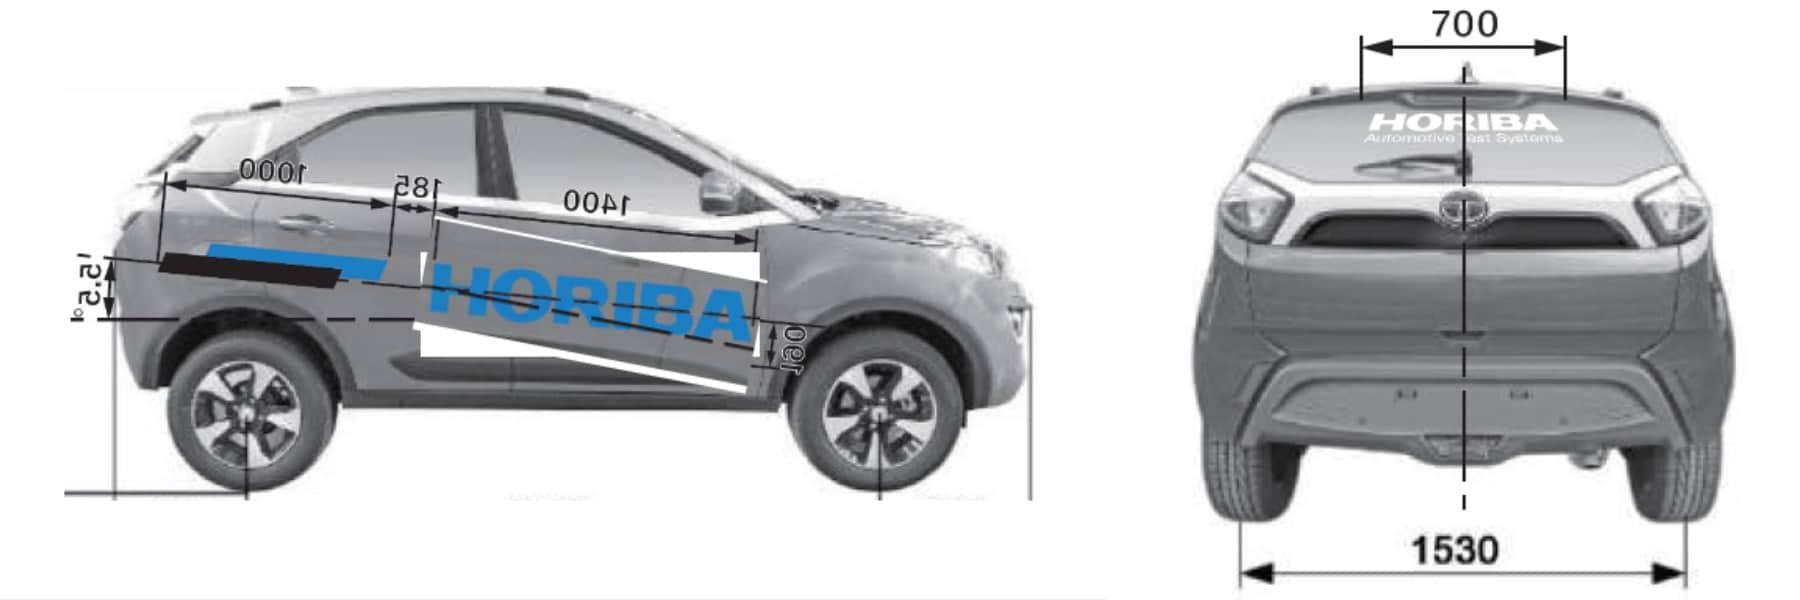 Car branding for the Horiba company is done on the sides and rear of the vehicle. The company logo and corporate colours are pasted as car stickers on the vehicle.